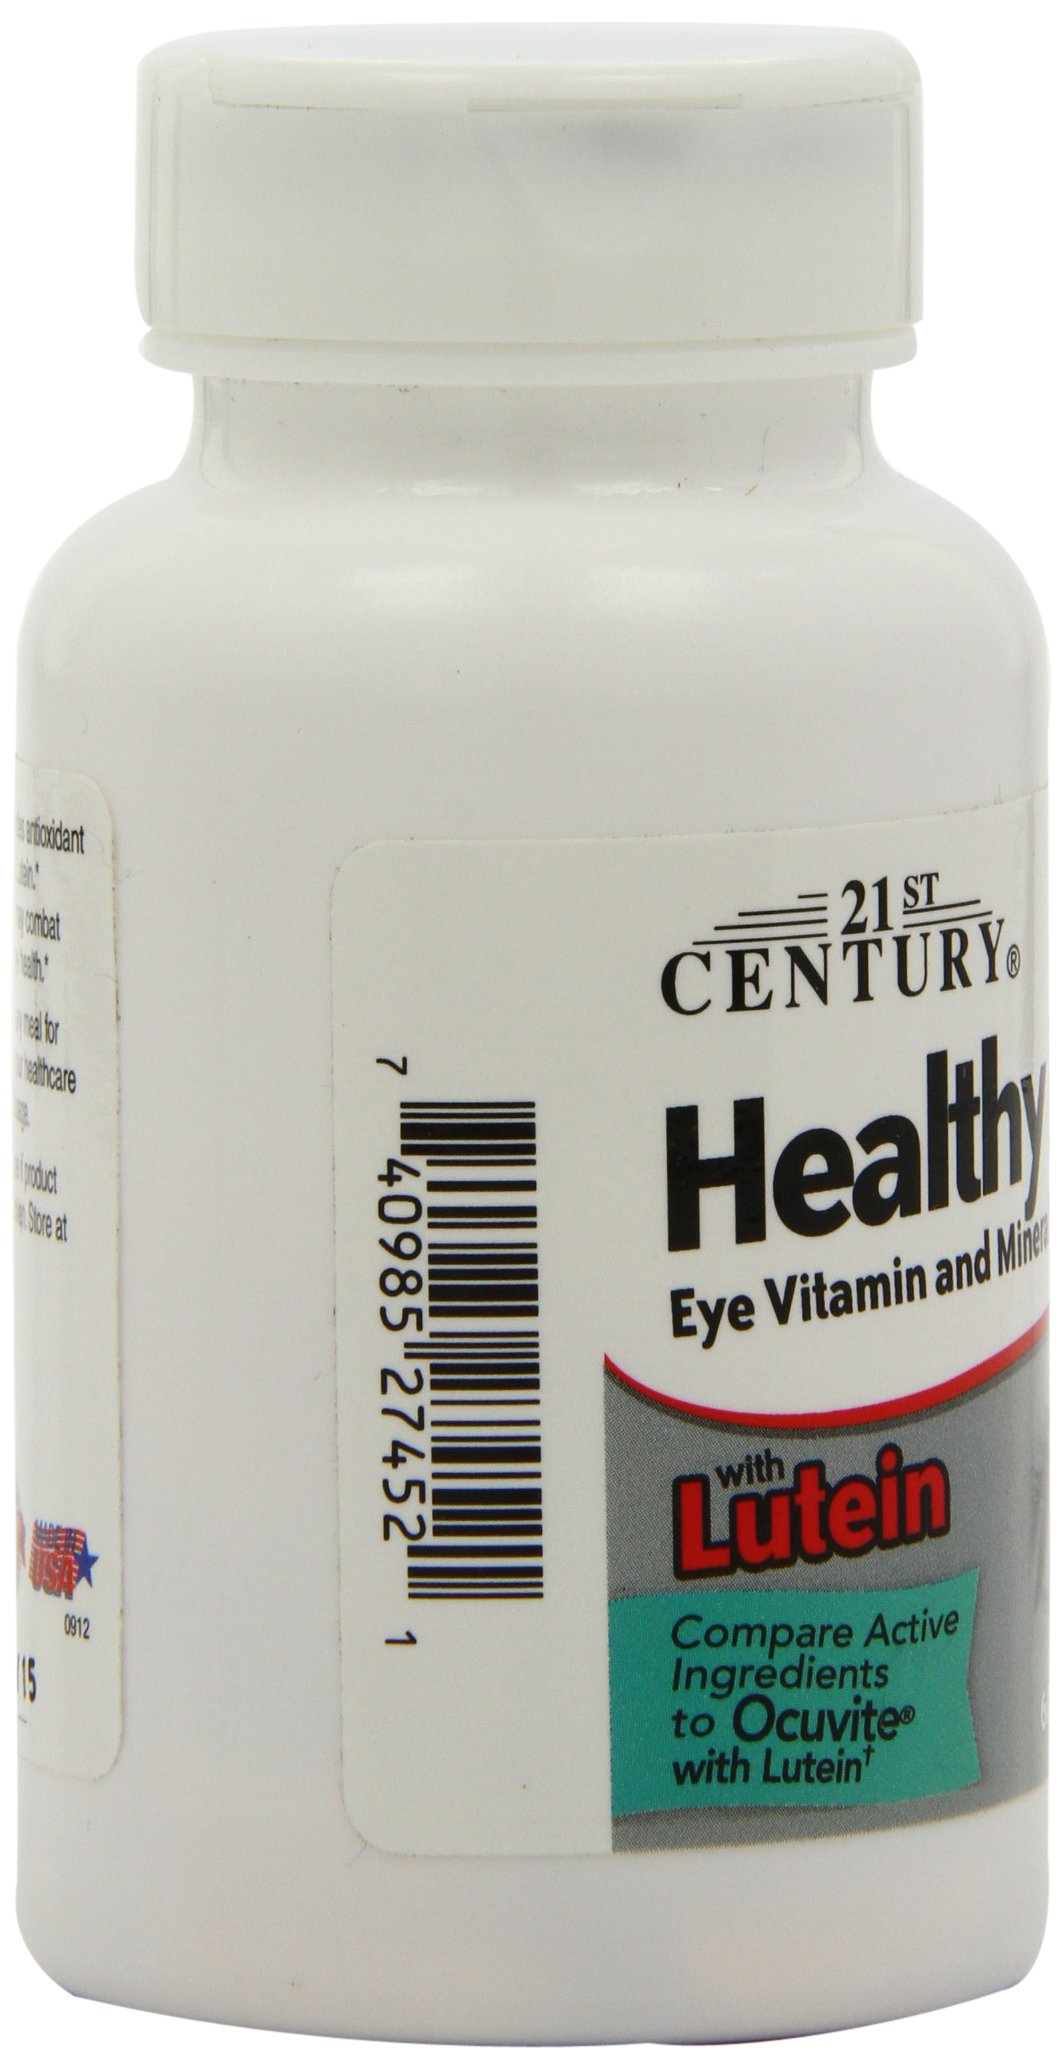 21st Century Healthy Eyes with Lutein Tablets, 60 Count by 21st Century (Image #6)